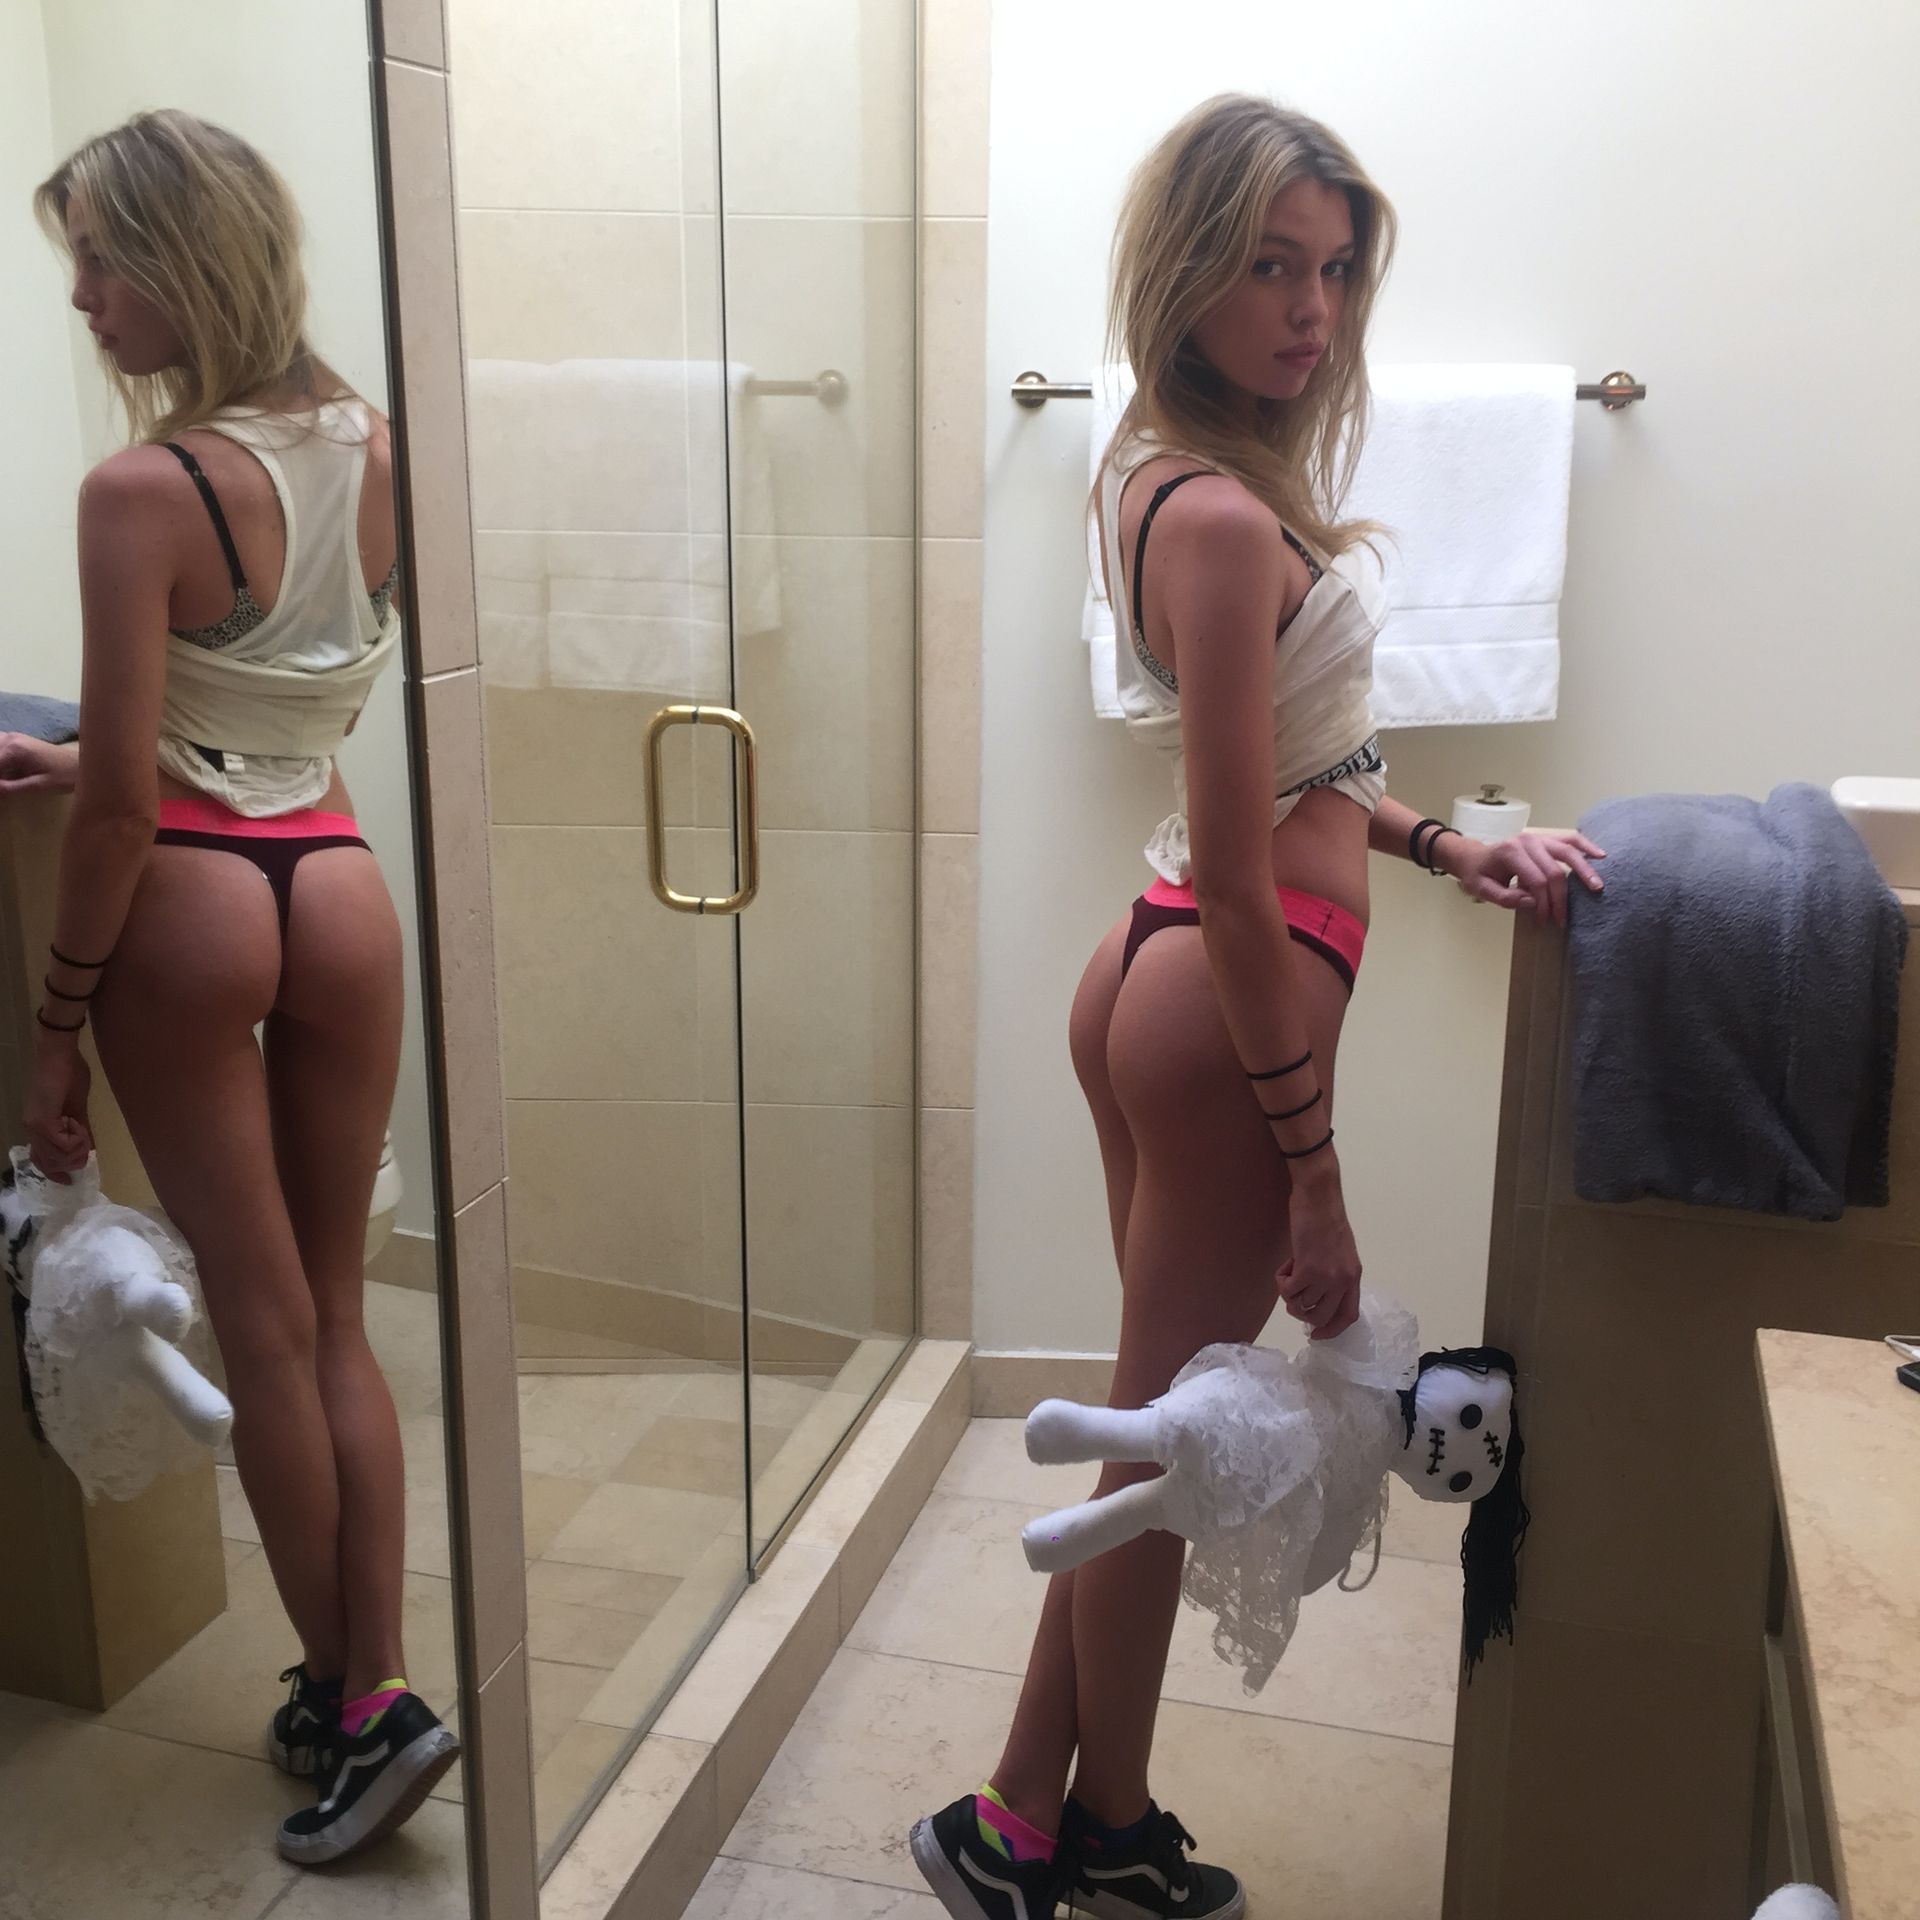 Stella Maxwell Nude Leaked The Fappening 0041